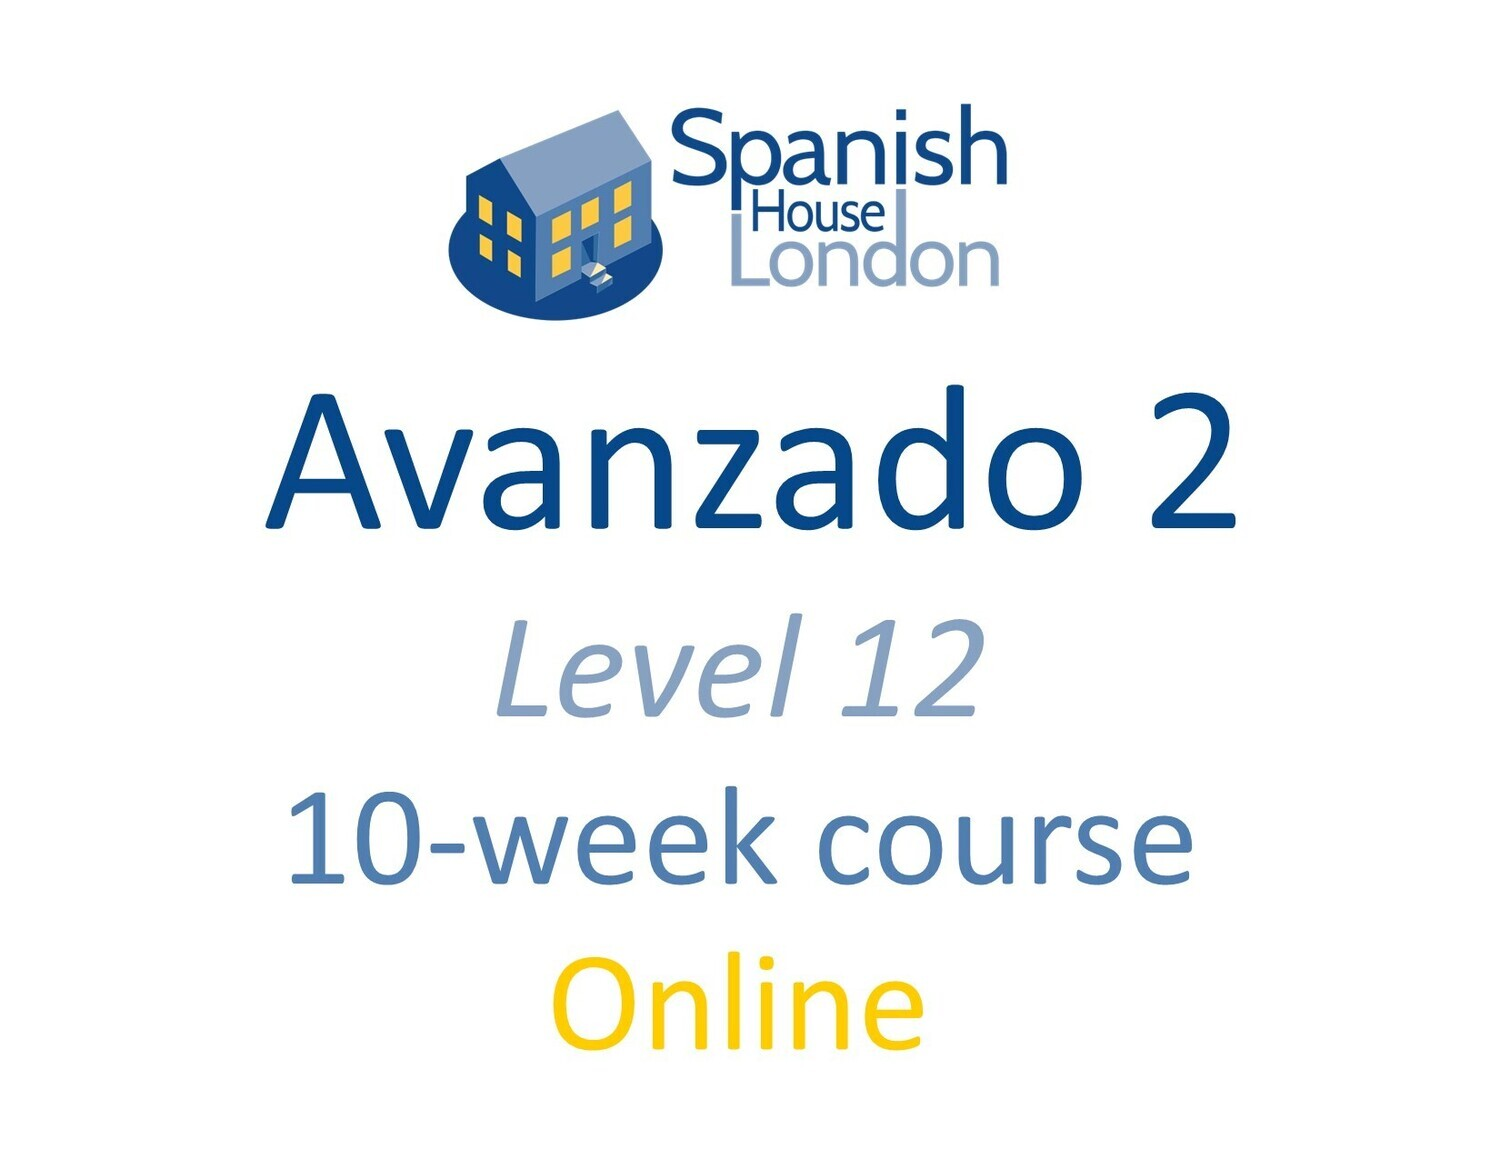 Avanzado 2 Course starting on 4th October at 6pm